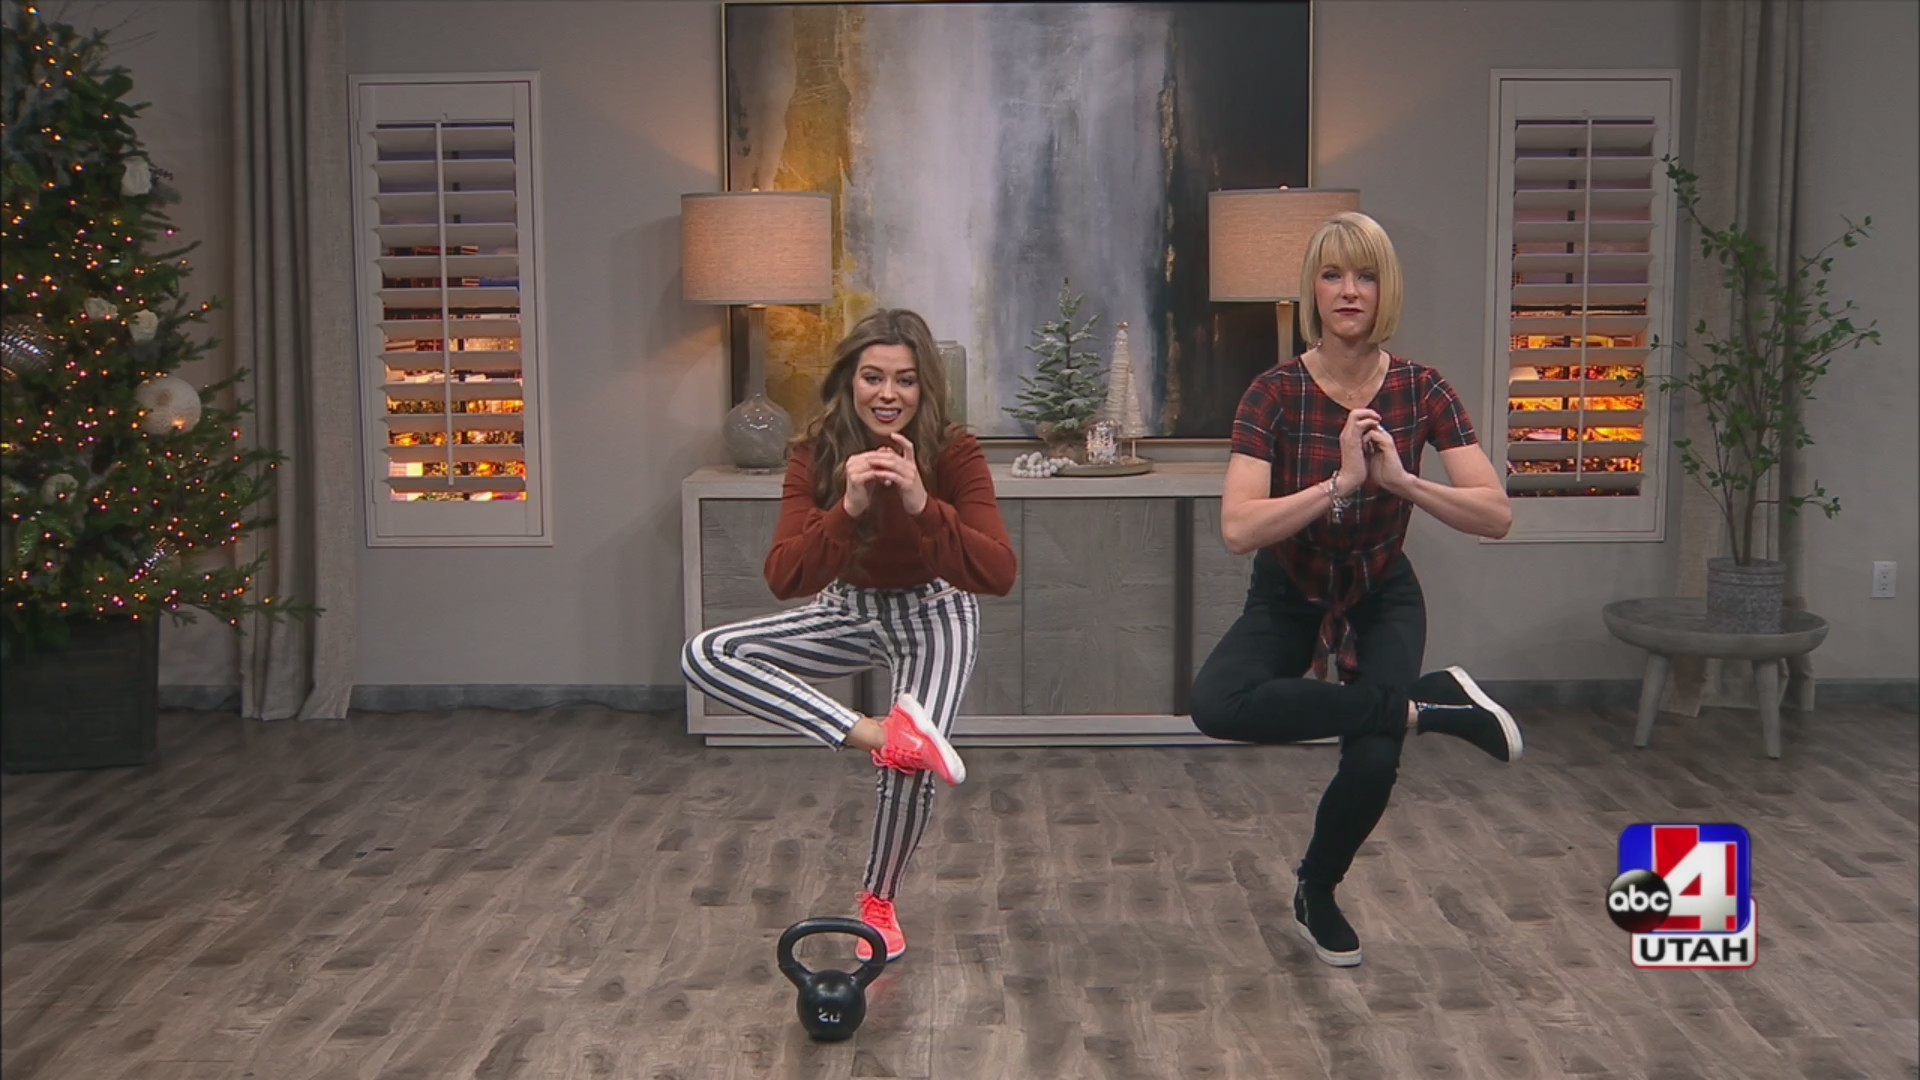 Nicea and Ali Exercises